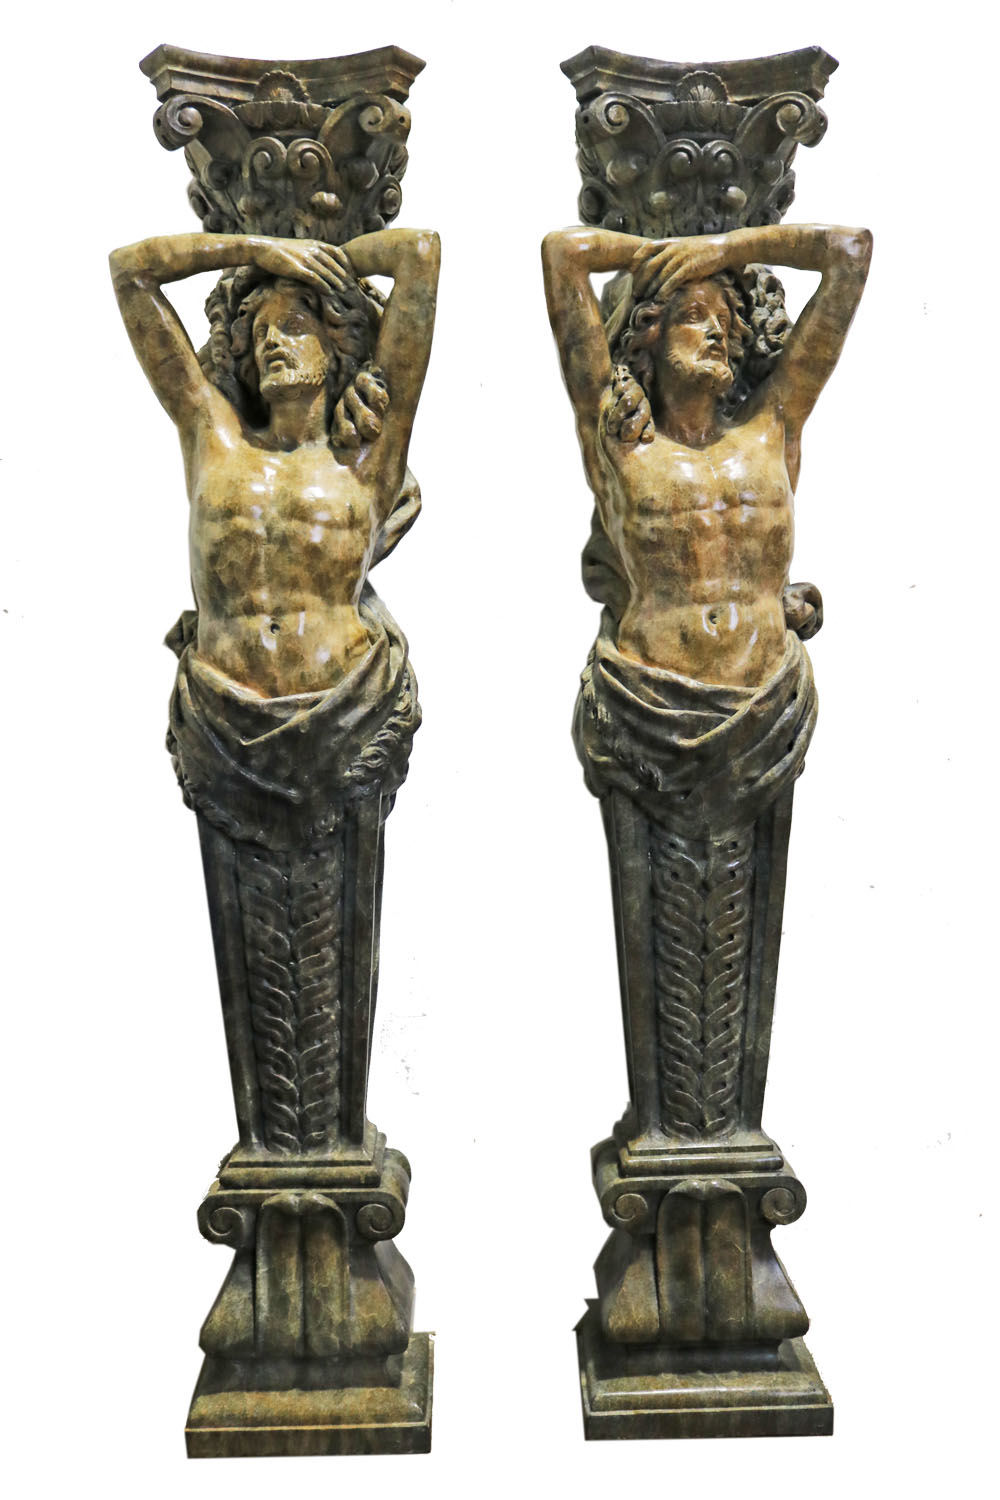 A Grand 19th Century Pair of Marbleized Metal Caryatids No. 4767